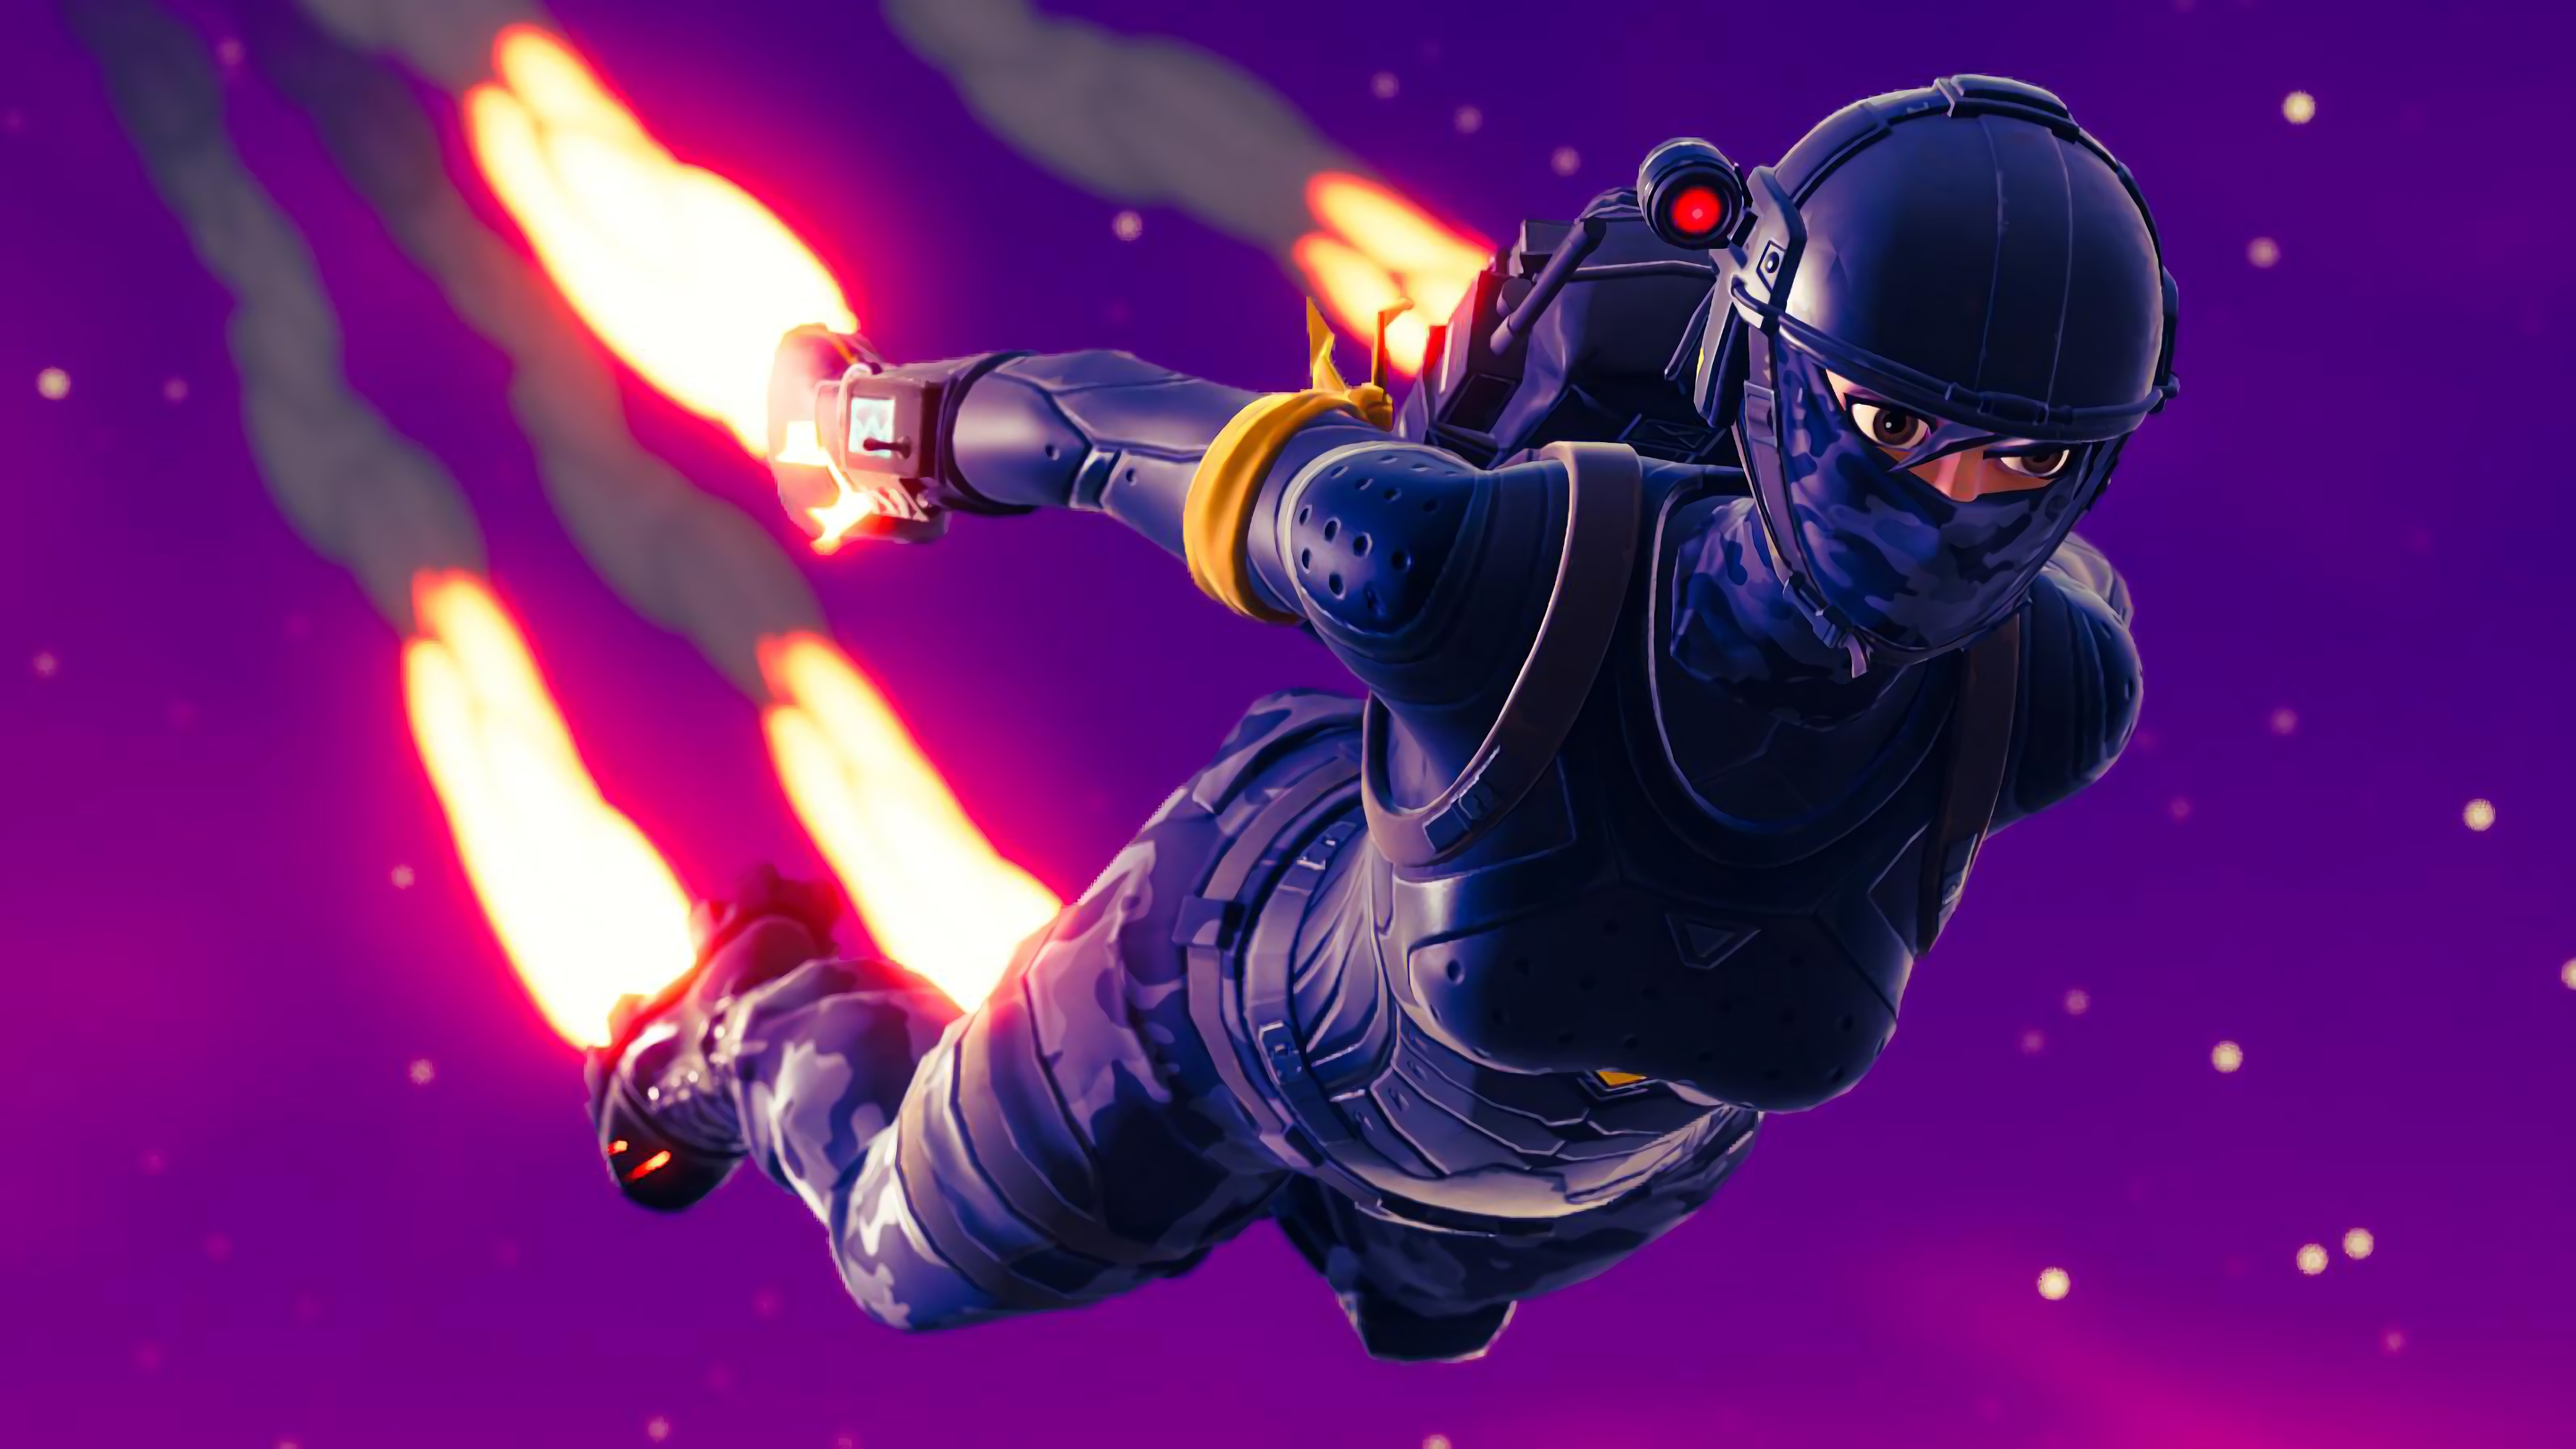 fortnite skydive hd wallpaper 64891